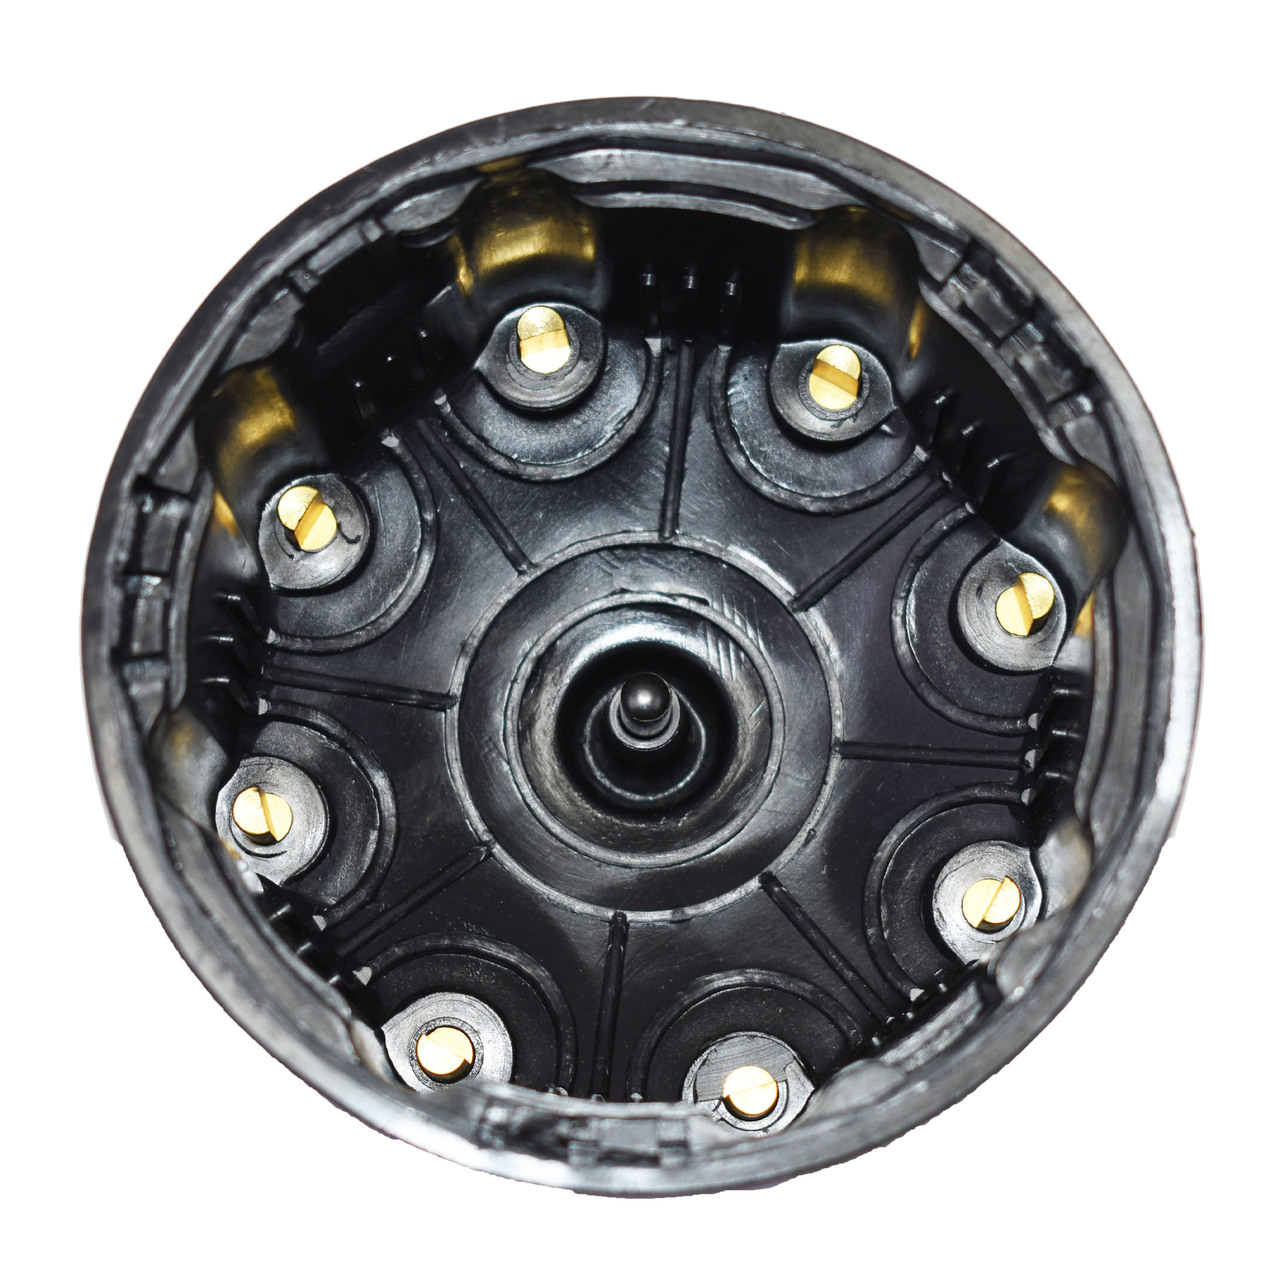 A-Team Performance 8-Cylinder Pro Billet & Ready to Run Cap & Rotor Kit Female Cap Fits A-Team Ready to Run Distributors (BLACK)